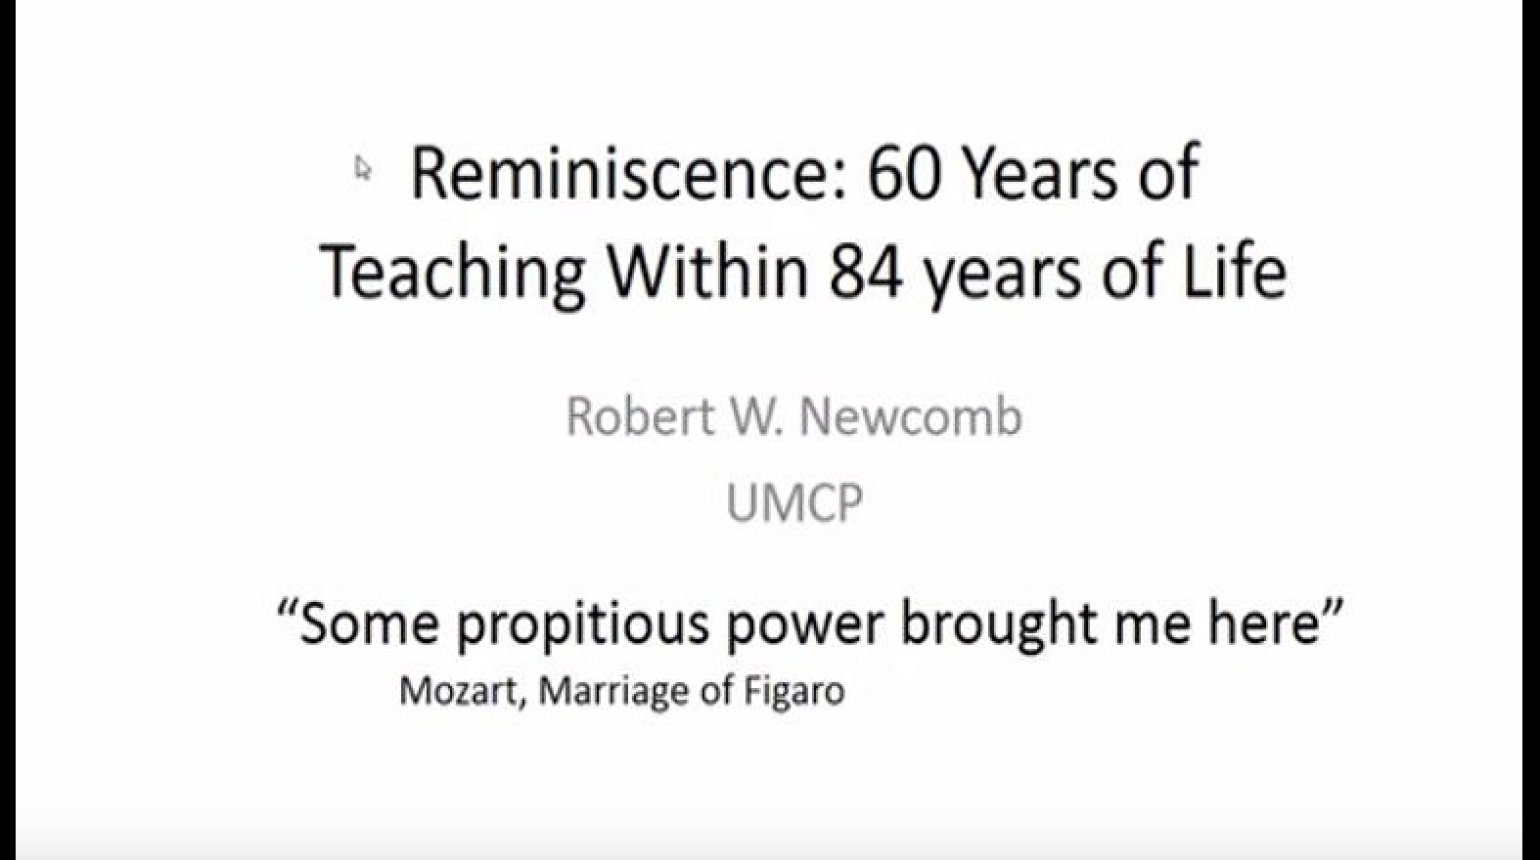 Reminiscence: 60 Years of Teaching Within 84 Years of Life